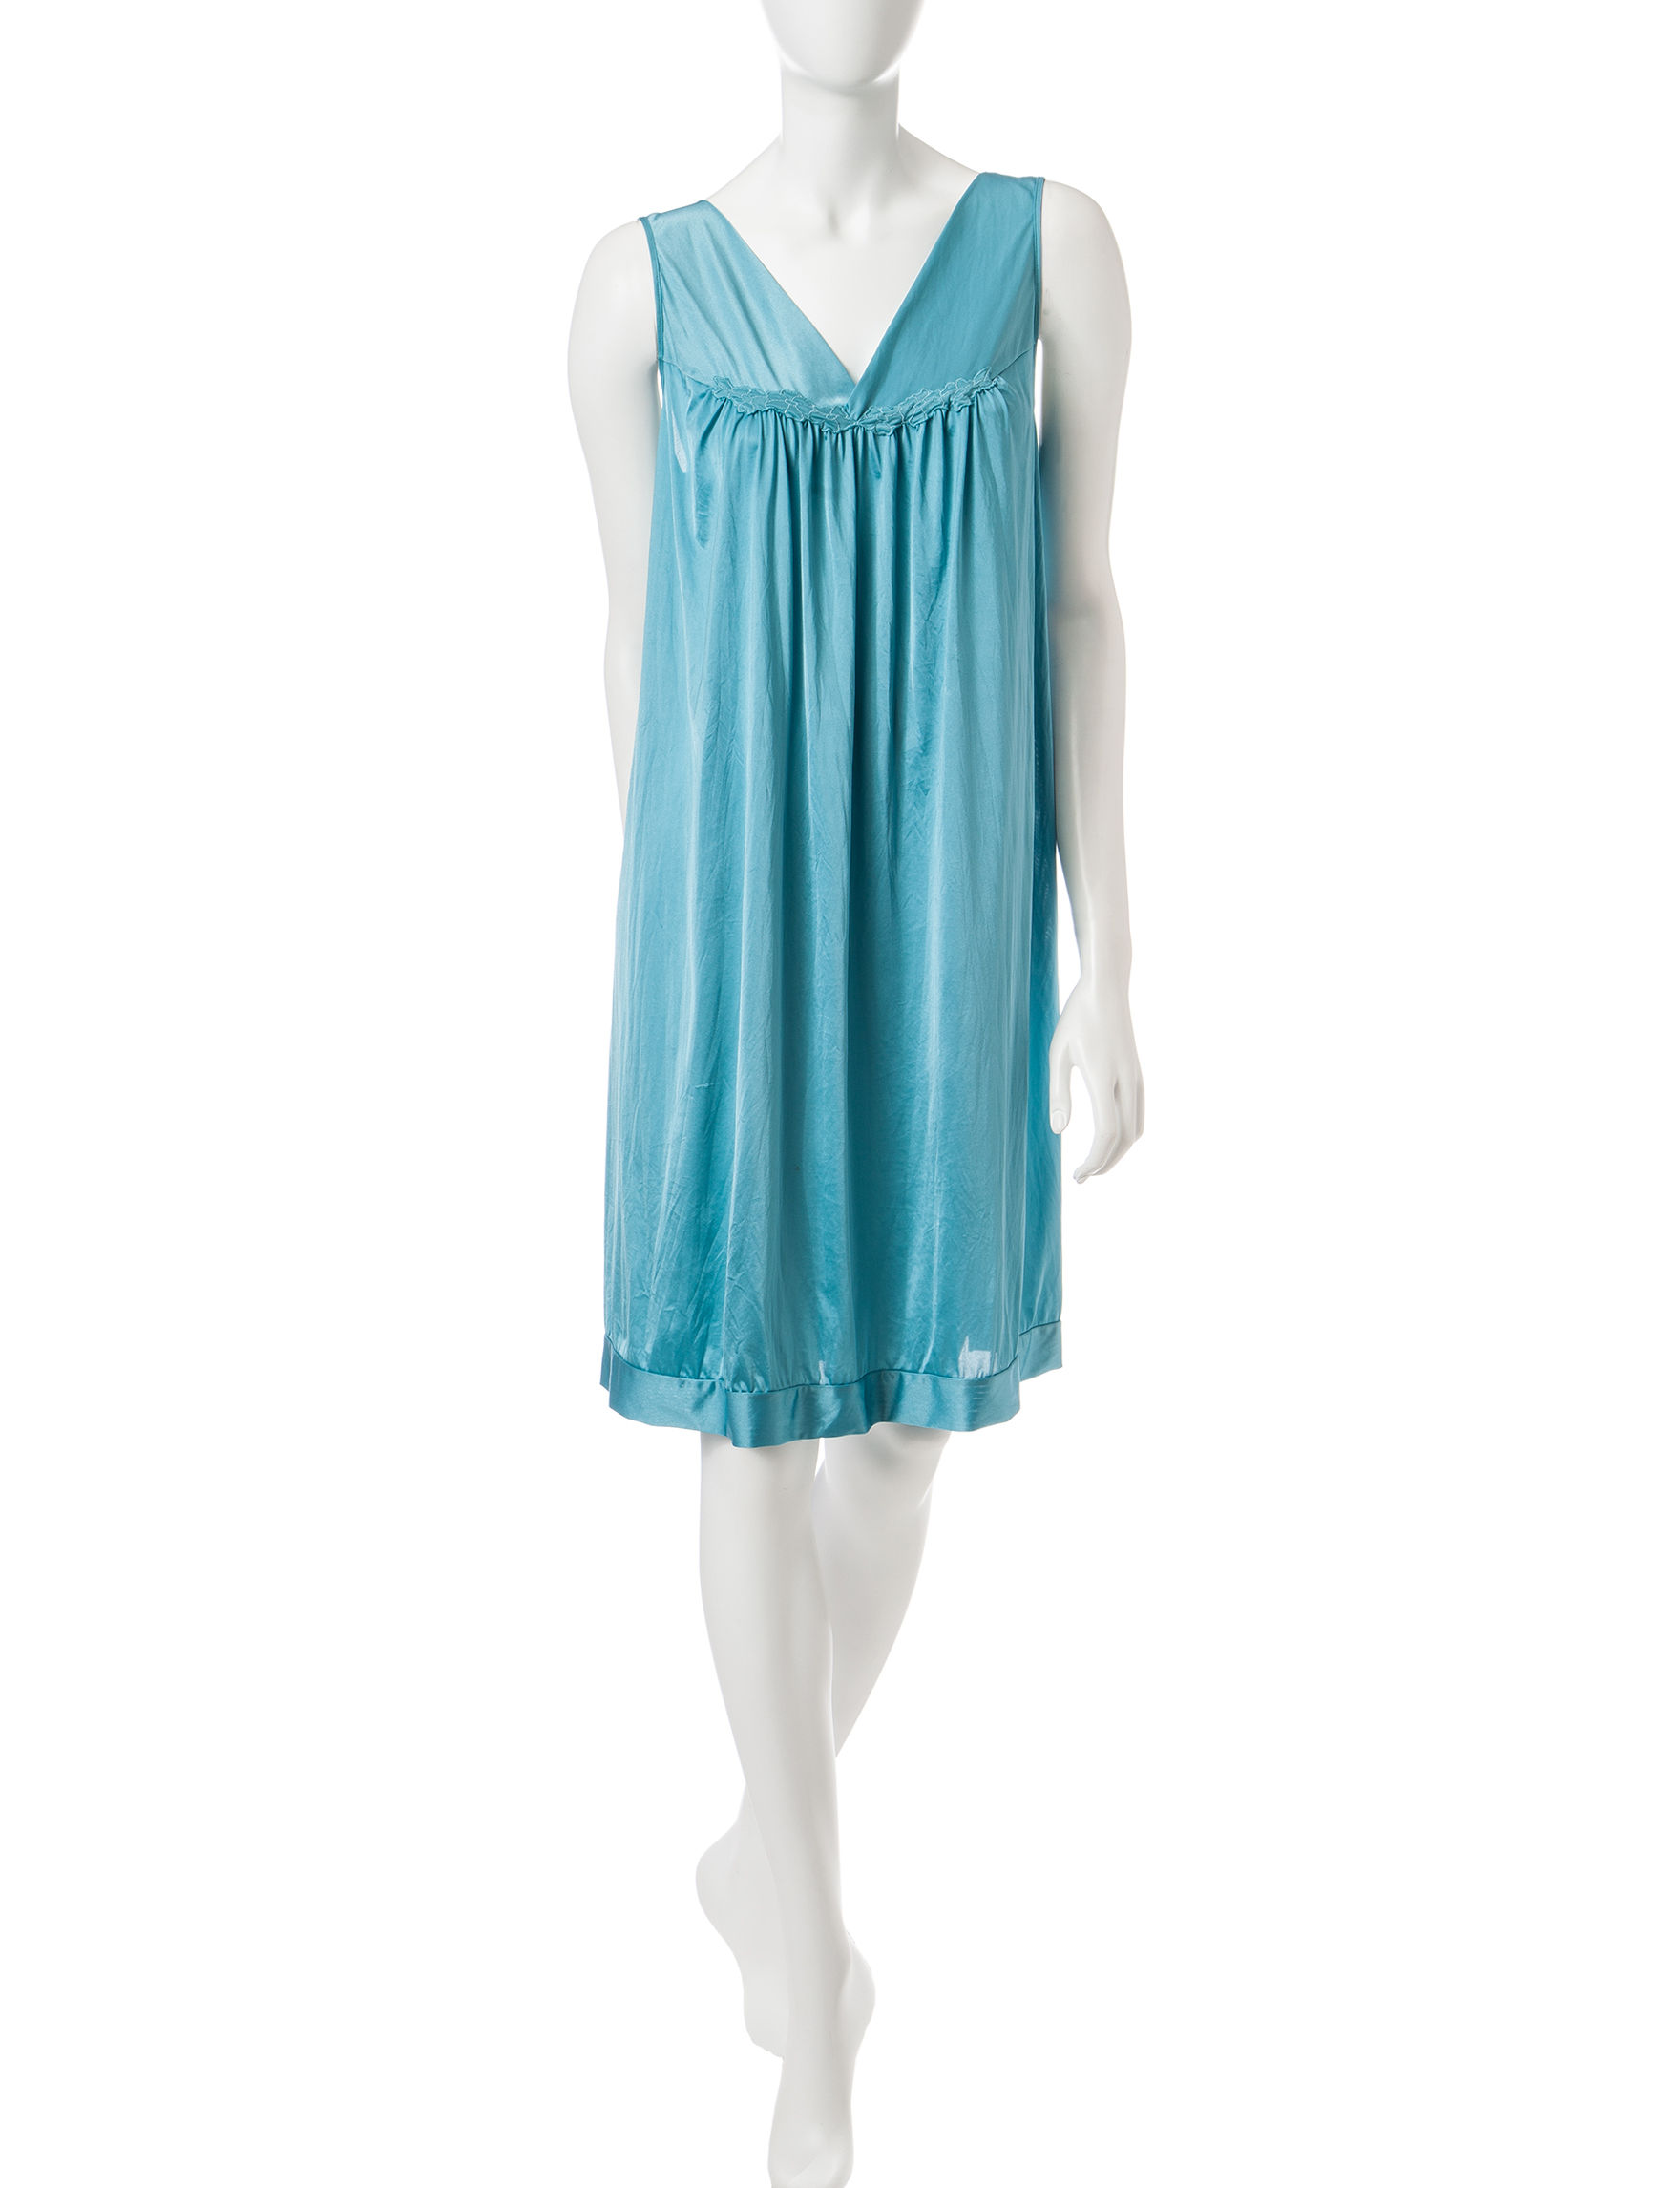 Vanity Fair Teal Nightgowns & Sleep Shirts